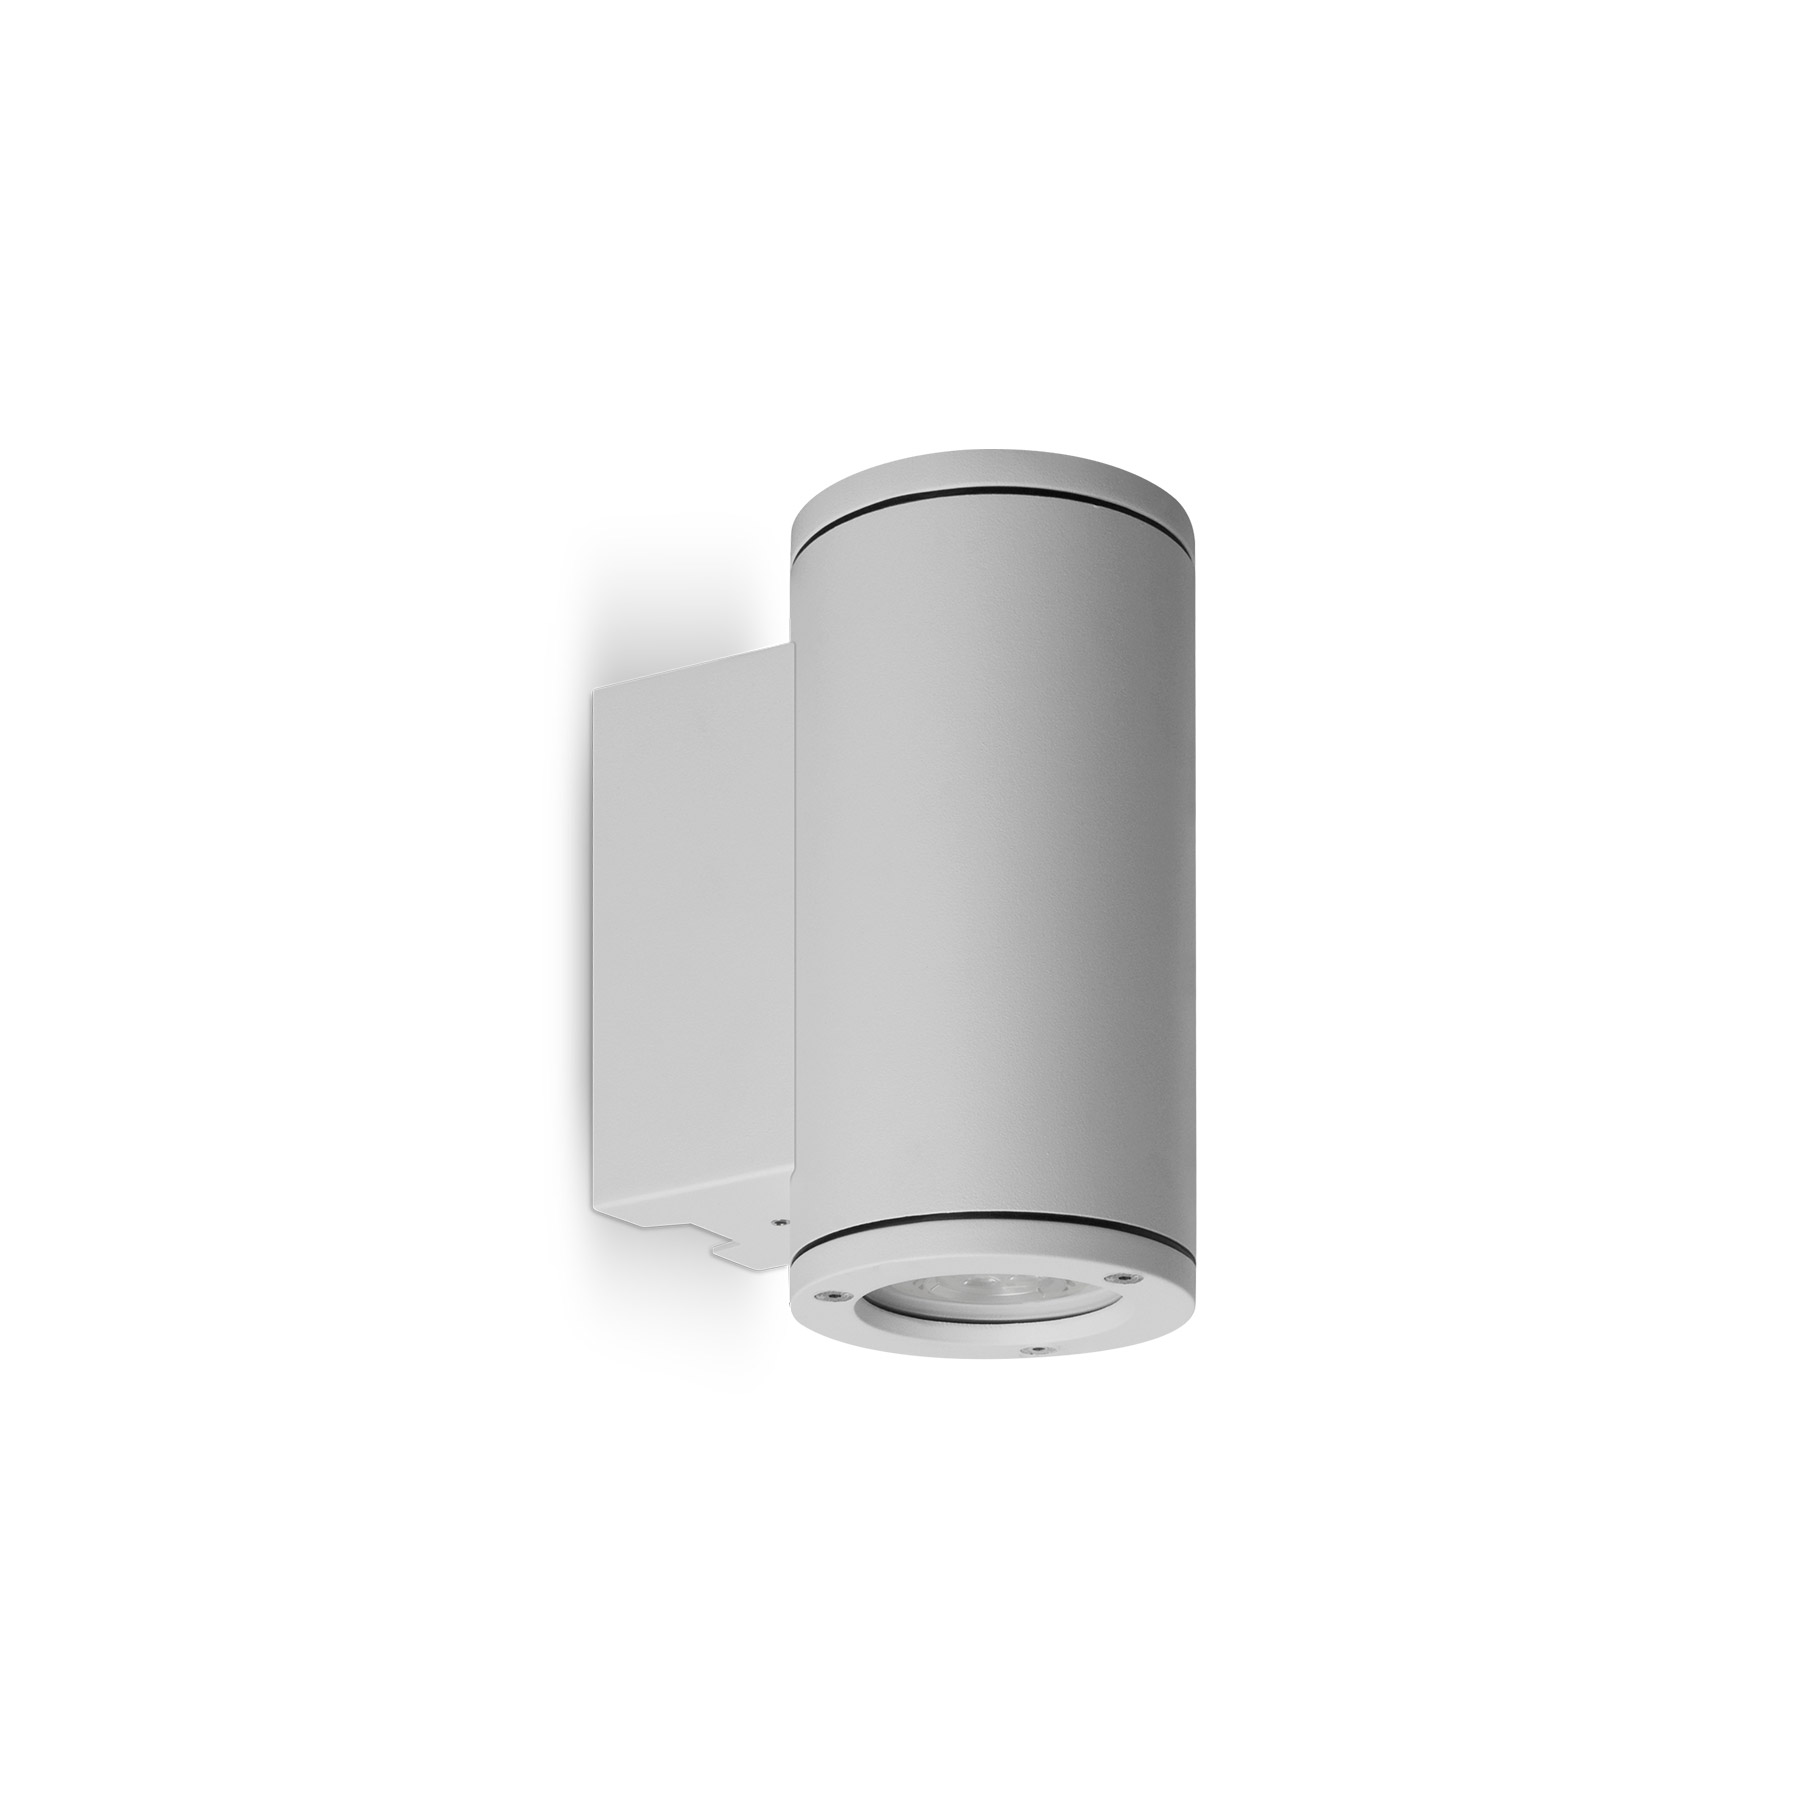 TUBUS Round Wall Up/Downlight